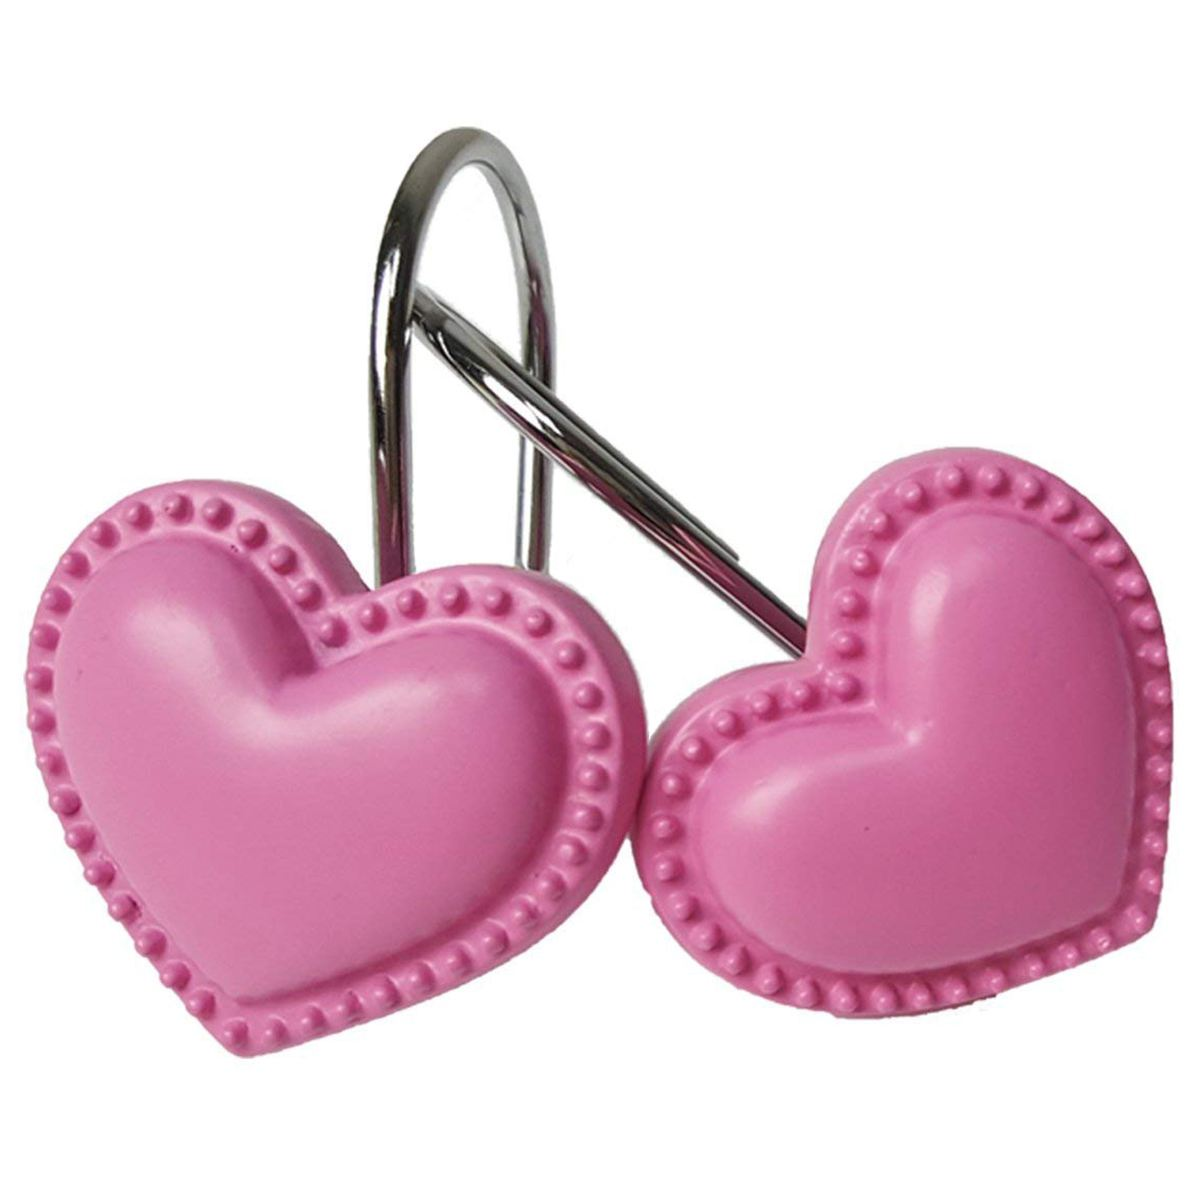 Heart Shaped Rust Resistant Decorative Shower Curtain Hooks 12- Pack Pink HeartHeart Shaped Rust Resistant Decorative Shower Curtain Hooks 12- Pack Pink Heart